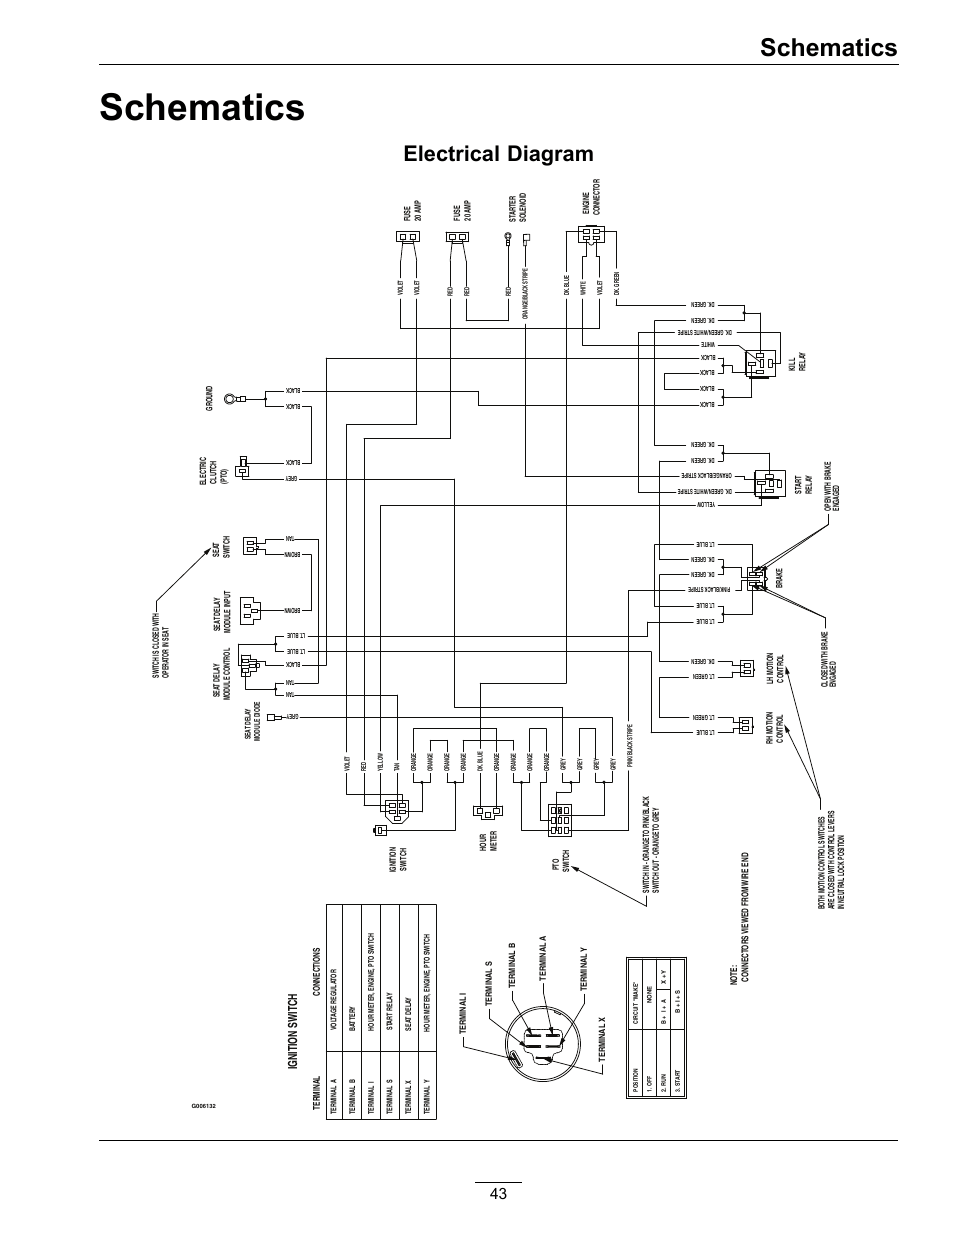 3 position switch schematic